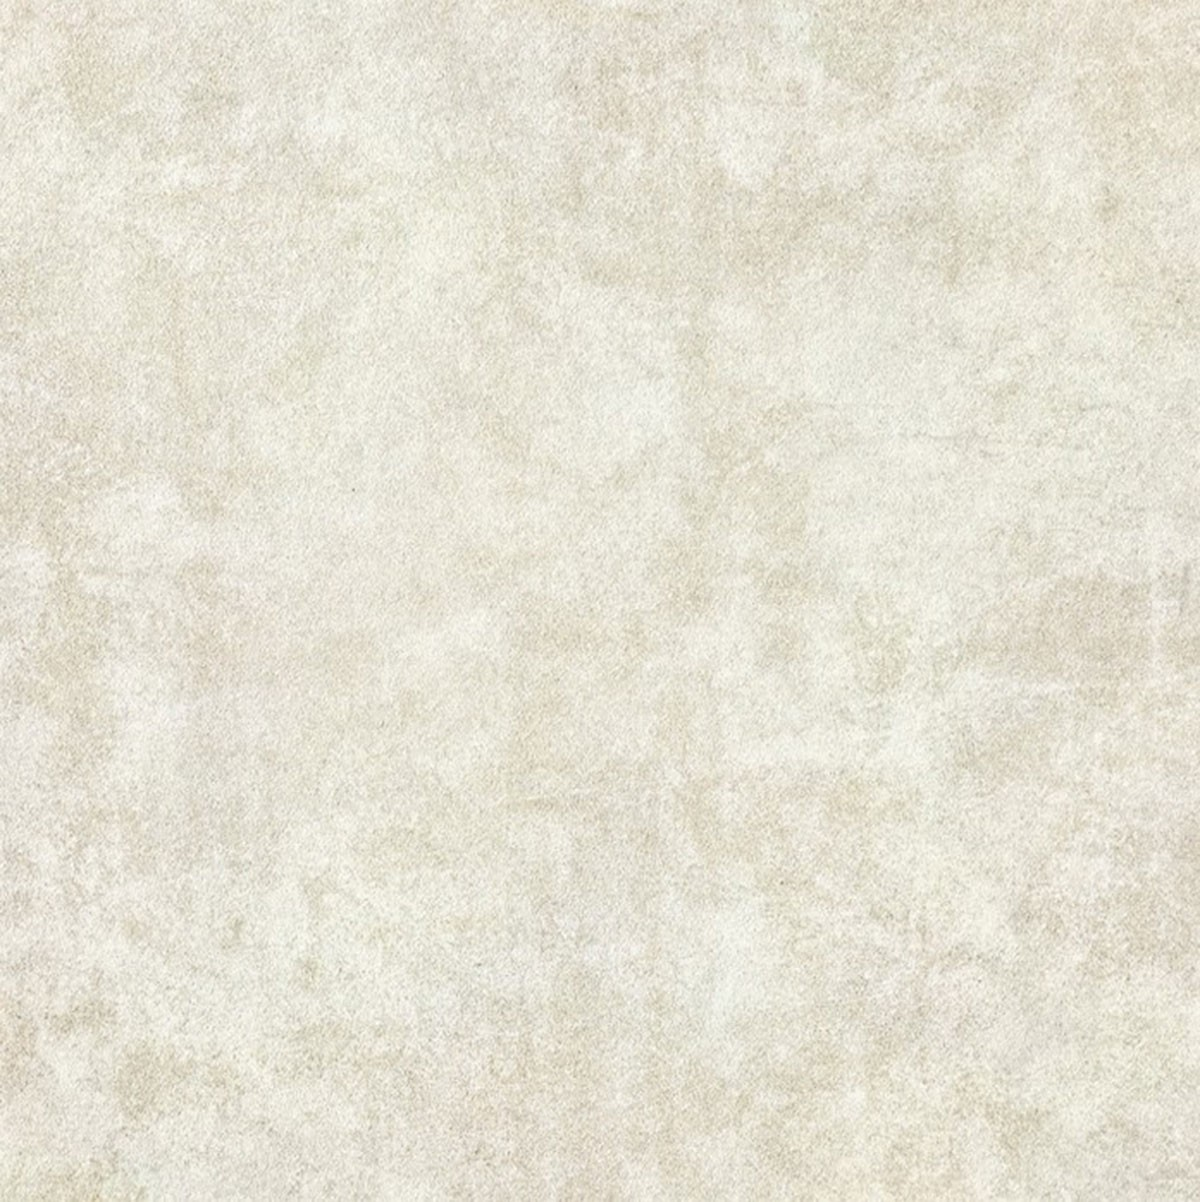 24 x 24 In. Beige Porcelain Floor Tile - 4 Pcs/Case (15.50 sq.ft/Case) (GN60A-1)